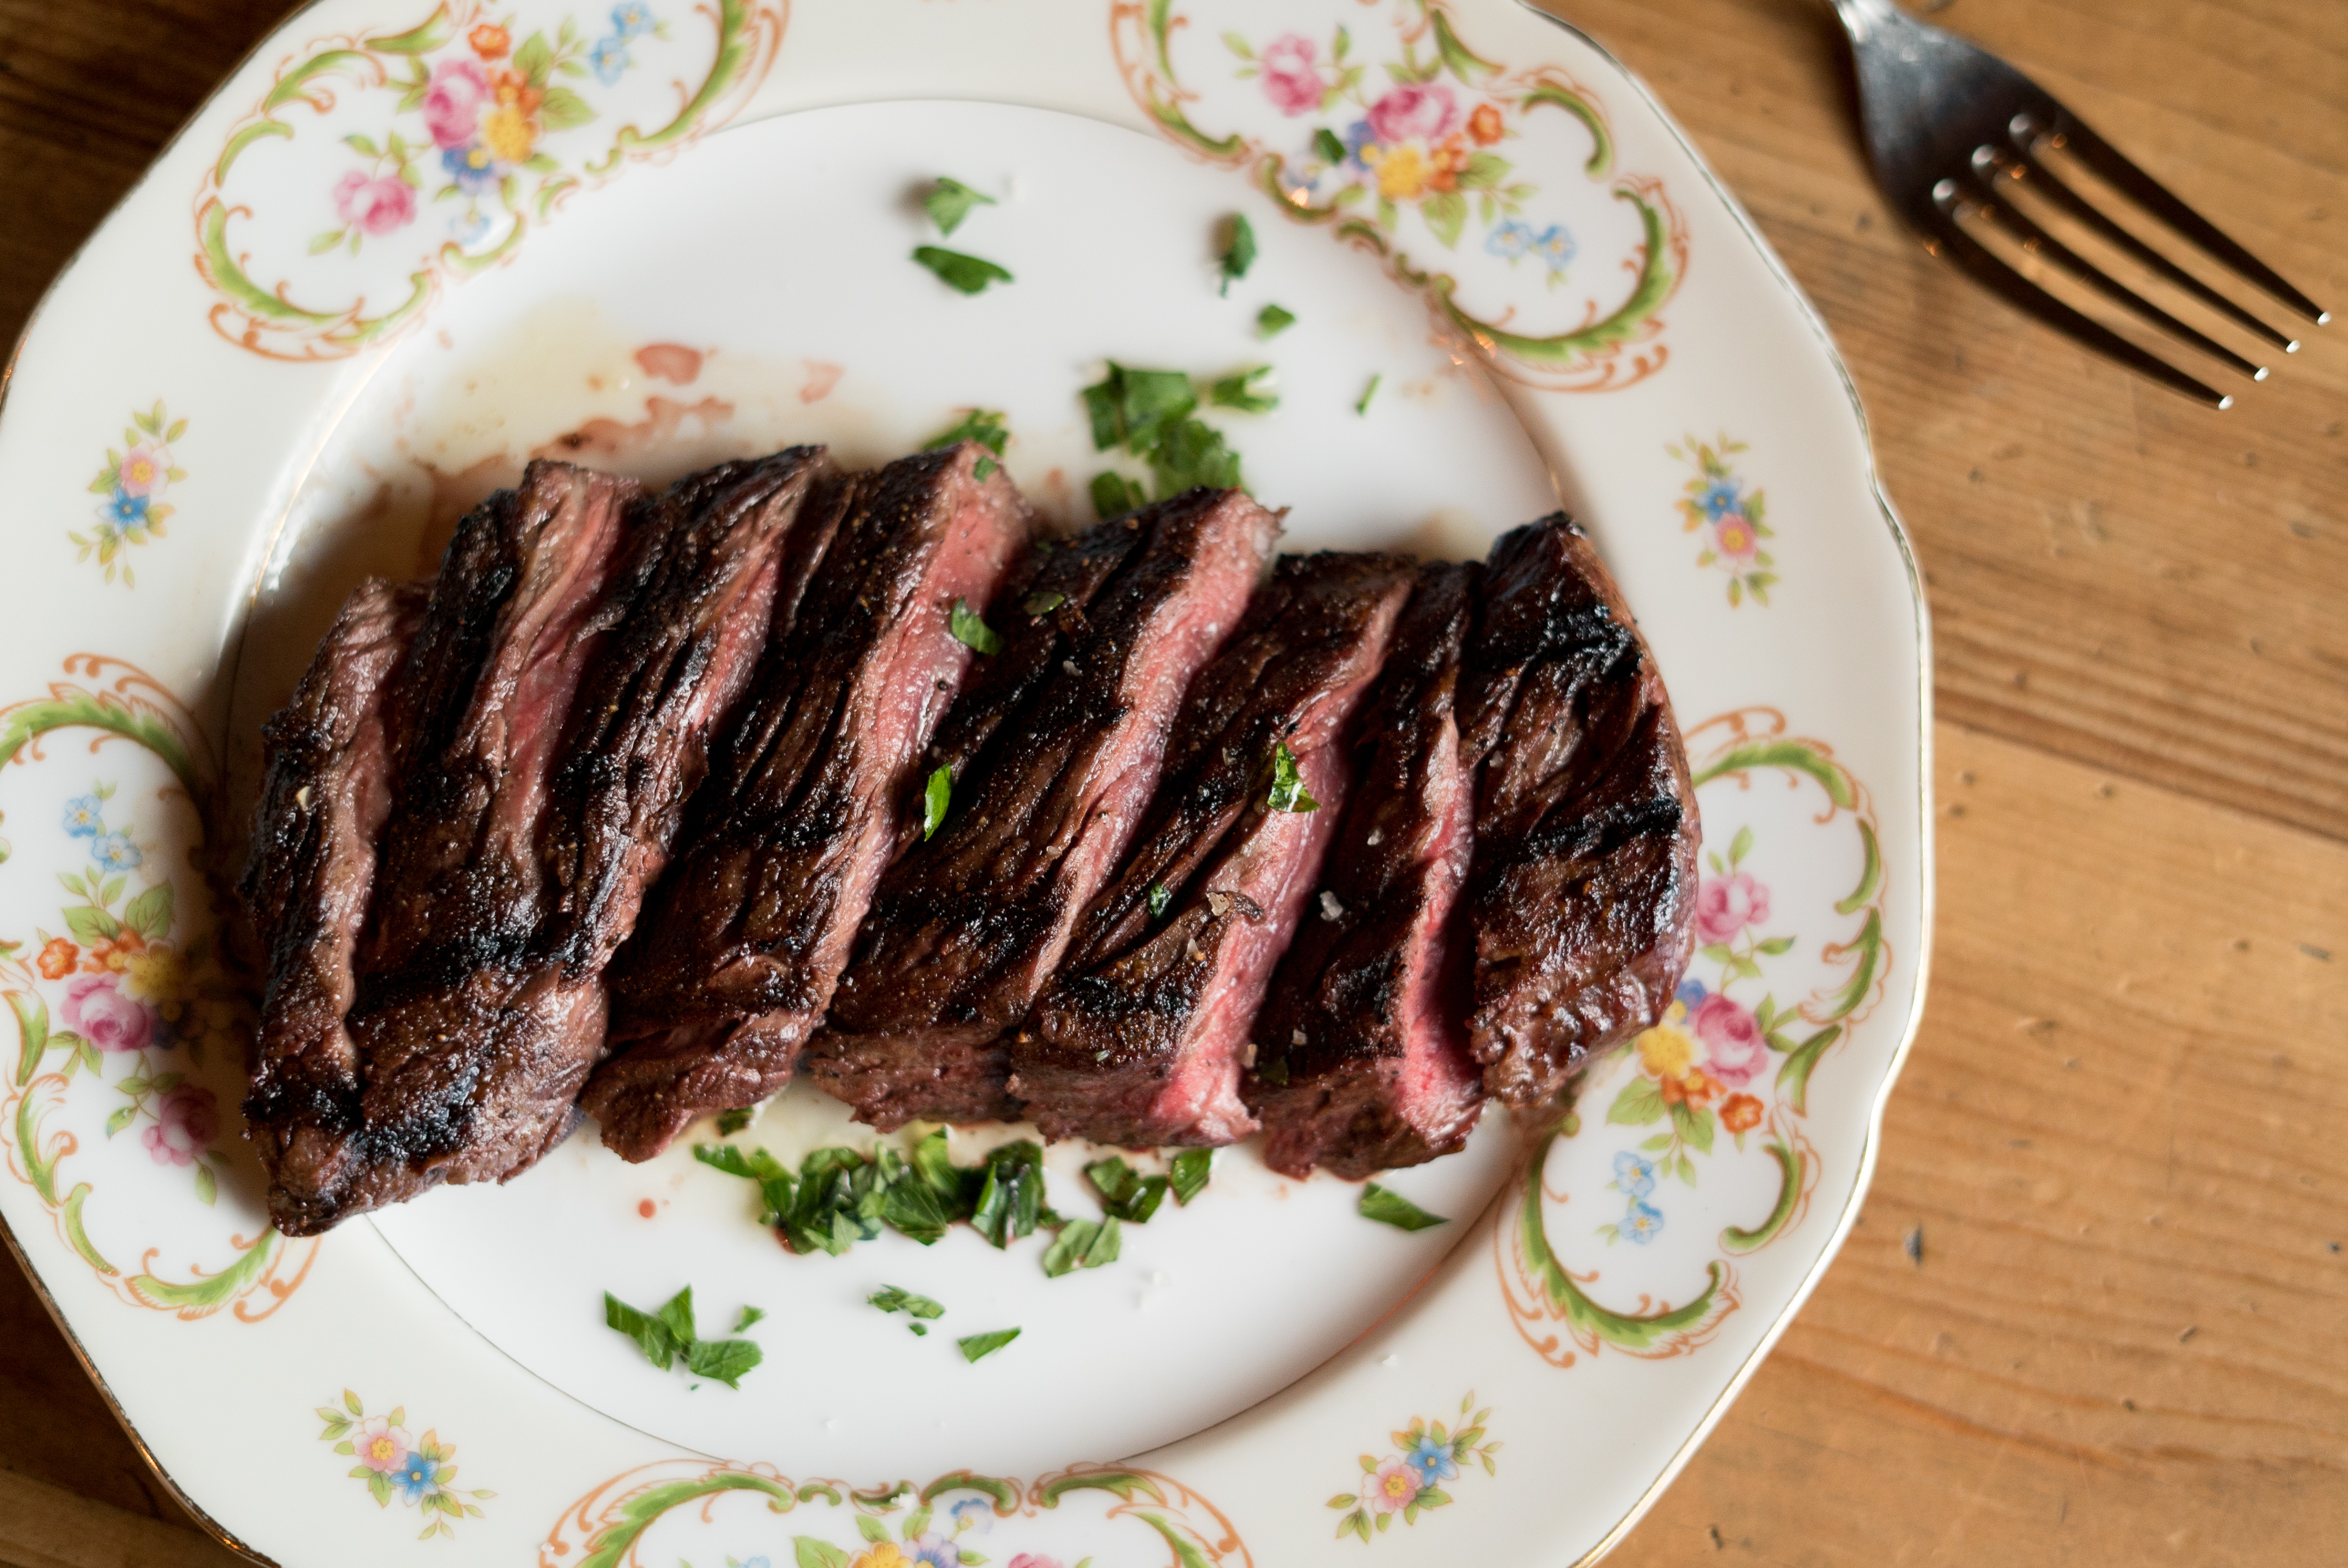 Slices of steak on a white plate with a floral design